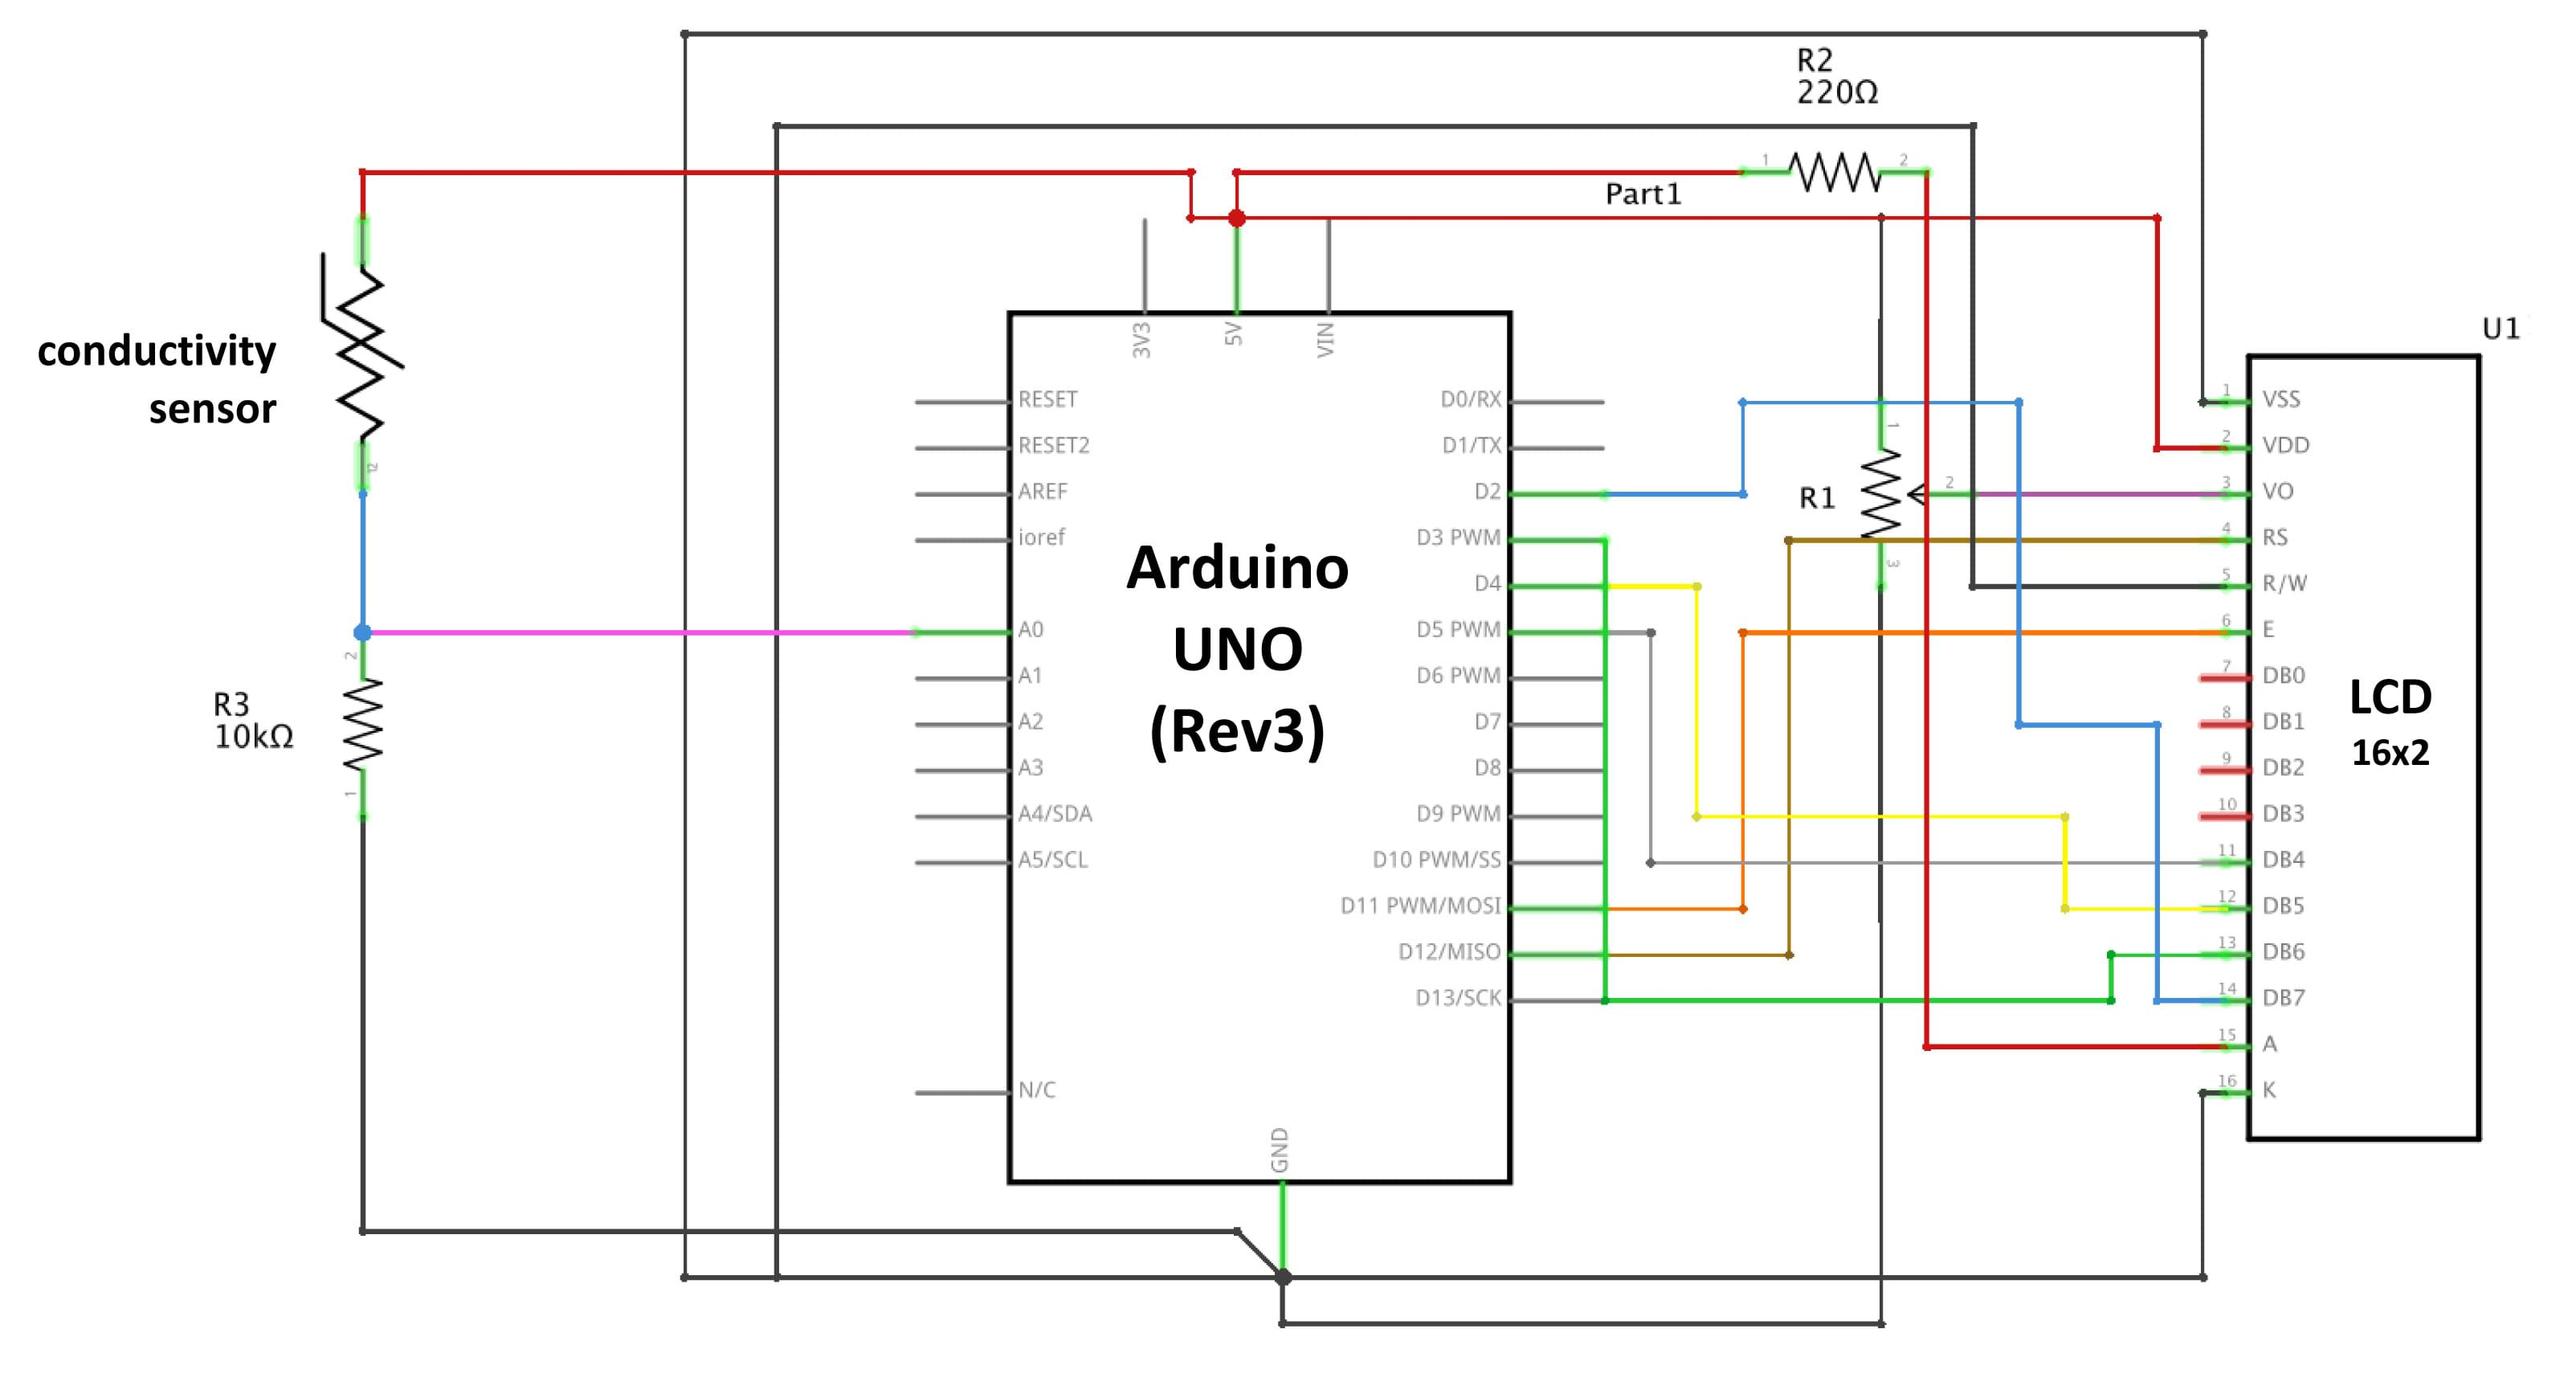 Samsung Dlp Parts Diagram together with Schematic Diagram Of Samsung Lcd Monitor as well Samsung Tv Power Supply Schematic additionally Samsung Tu40eo Led Lcd Tv Power Supply additionally 795h Wiring Diagram. on toshiba tv schematic diagrams